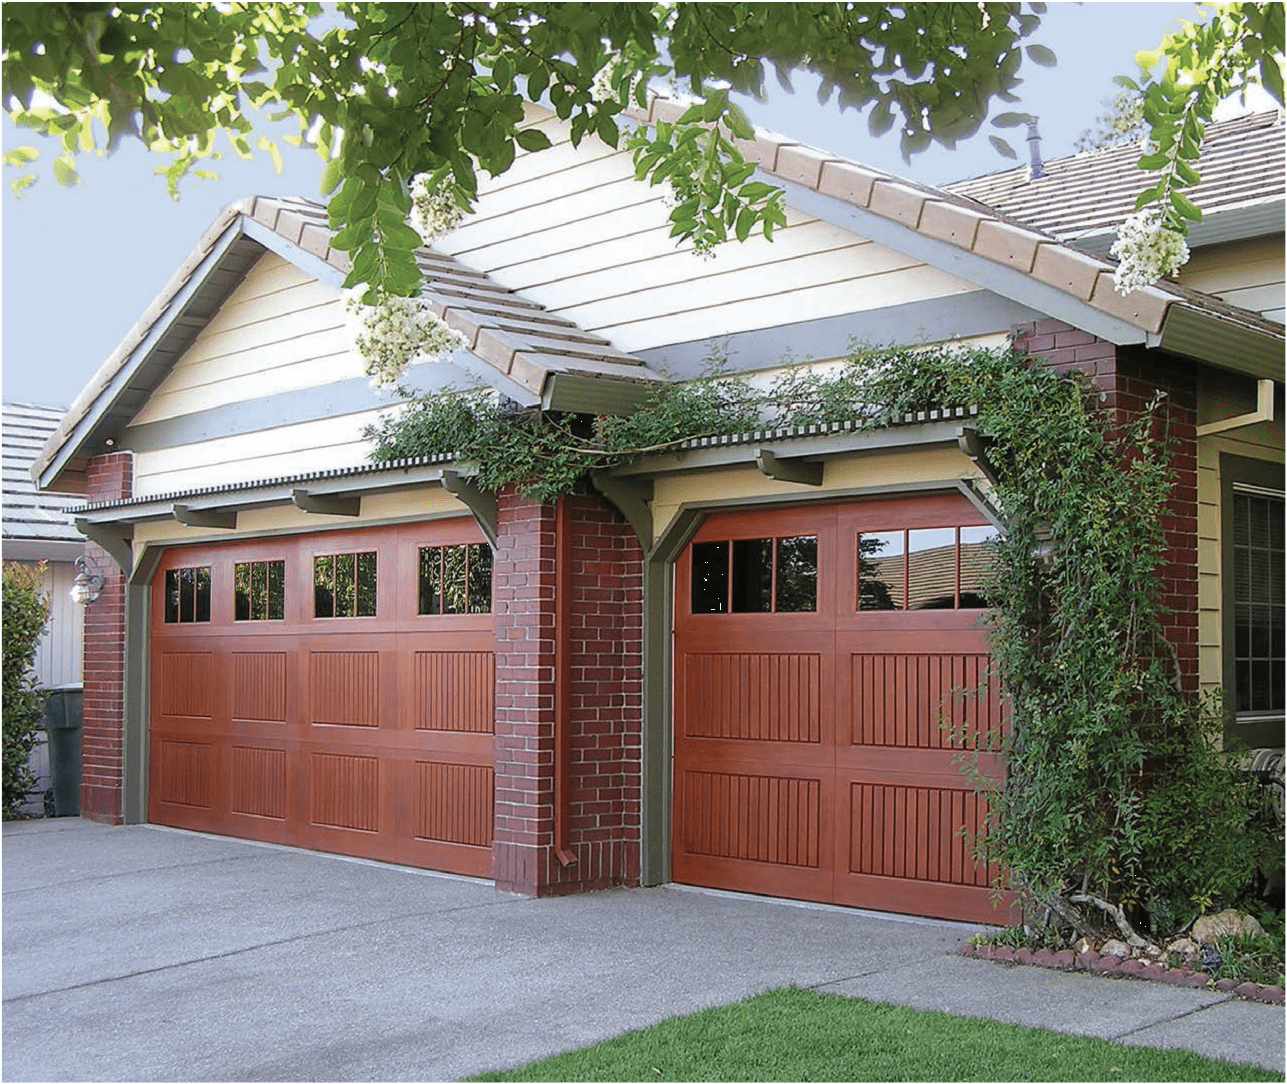 Doors To Garage: Impression Collection Gallery